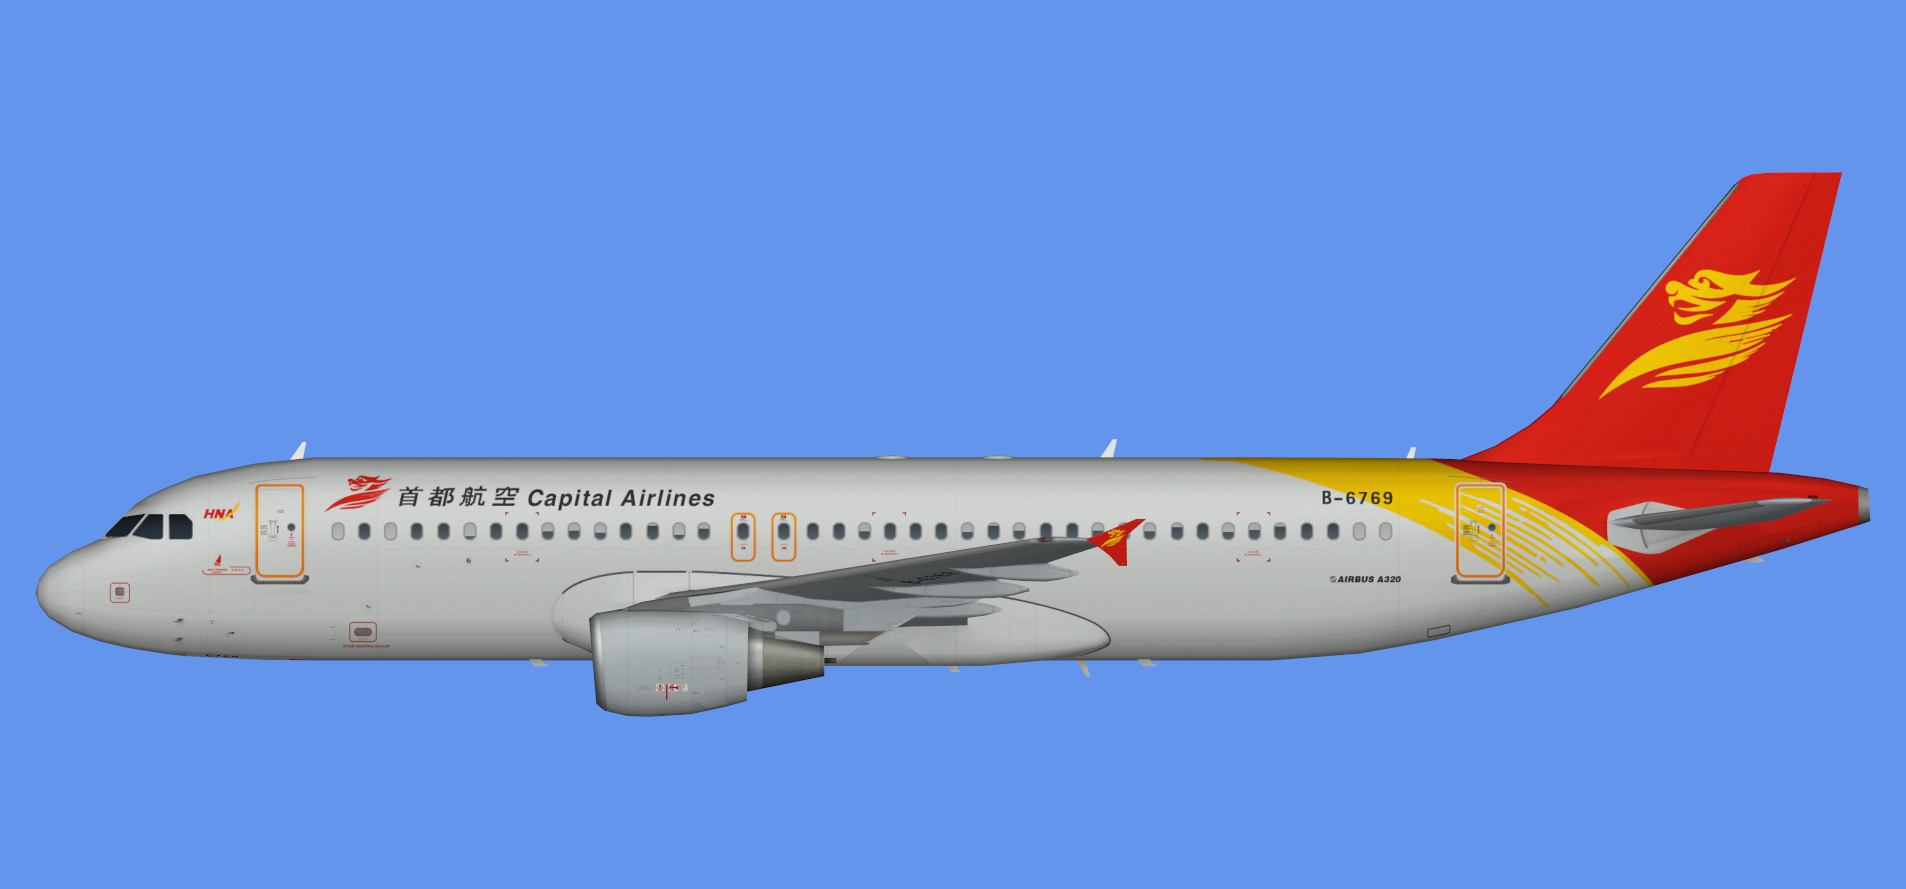 Capital Airlines Airbus A320 CFM